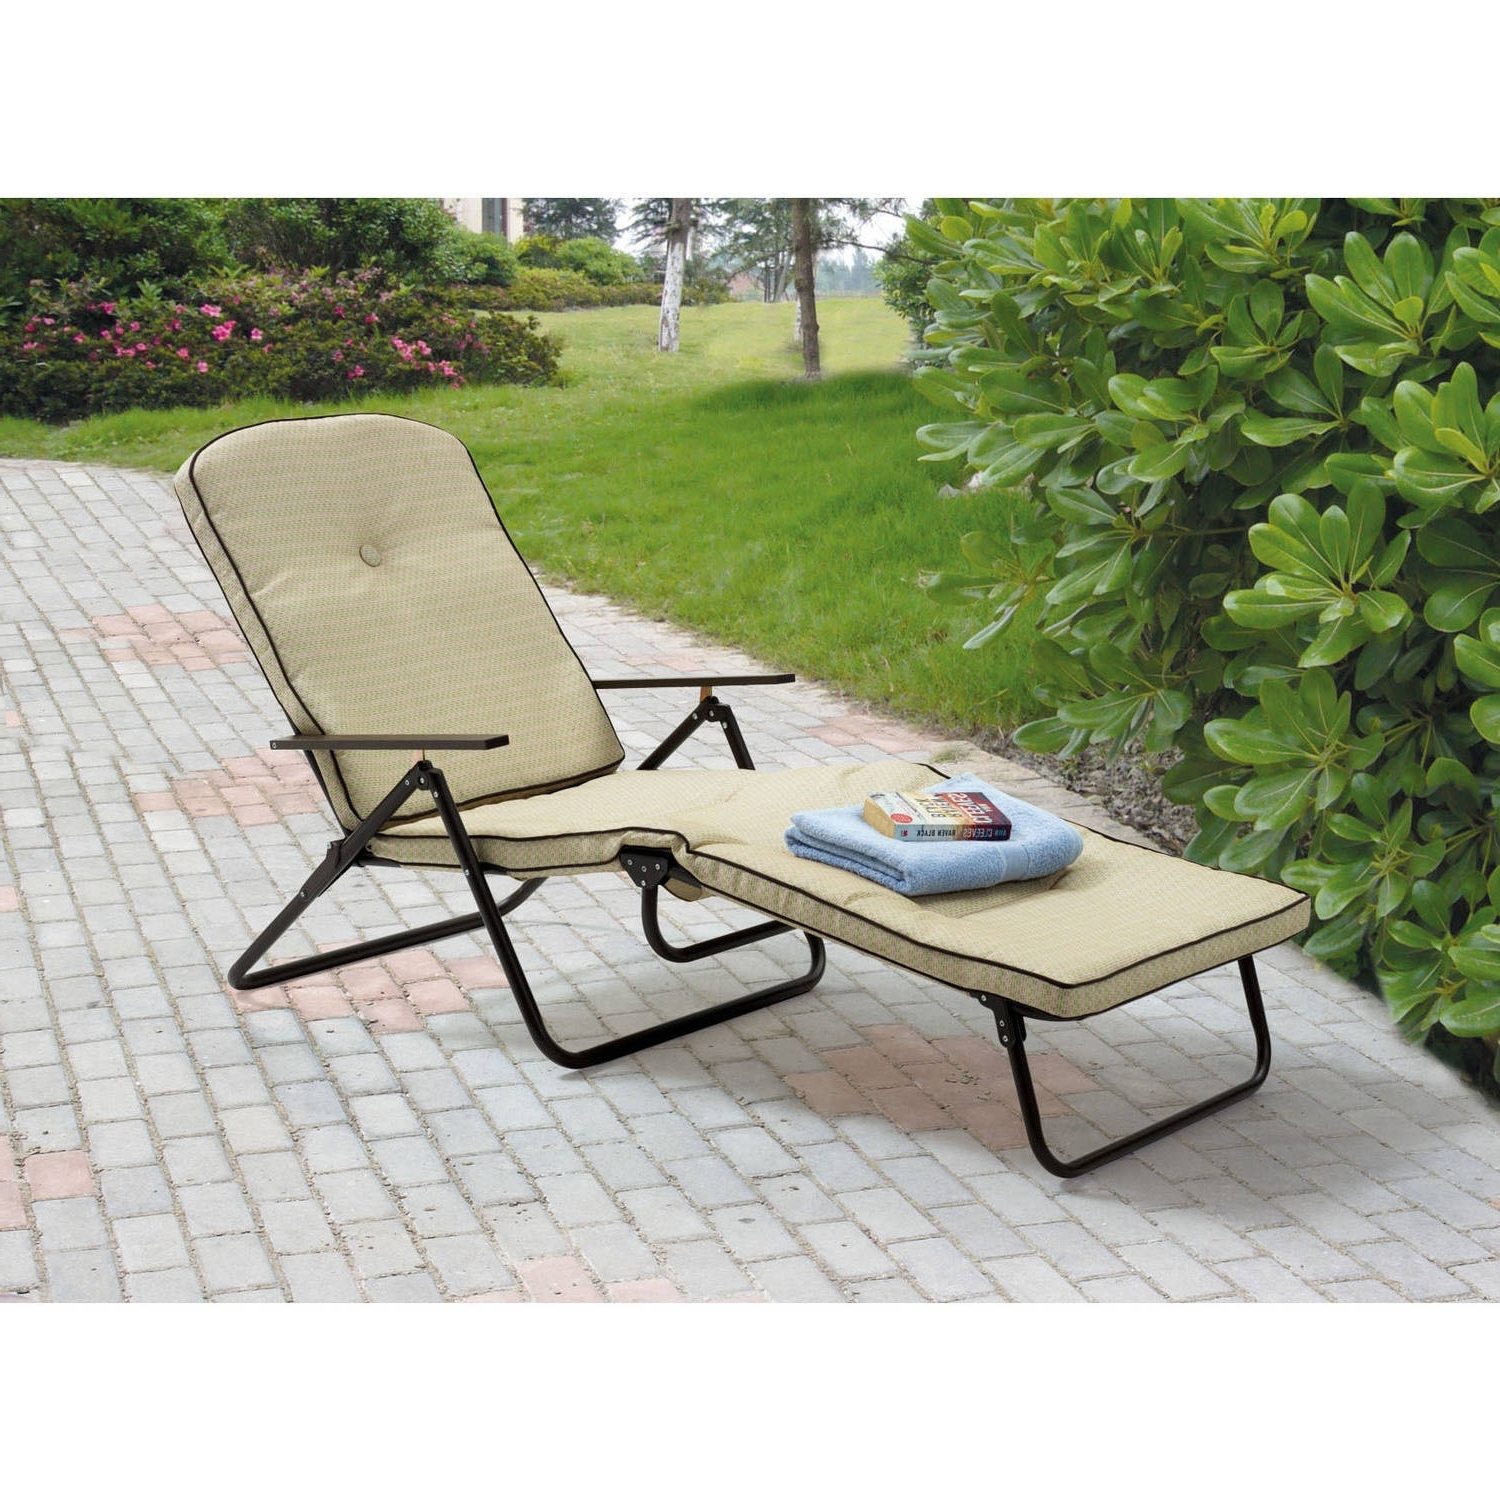 Latest Mainstays Sand Dune Outdoor Padded Folding Chaise Lounge, Tan Throughout Folding Chaise Lounge Chairs For Outdoor (View 8 of 15)